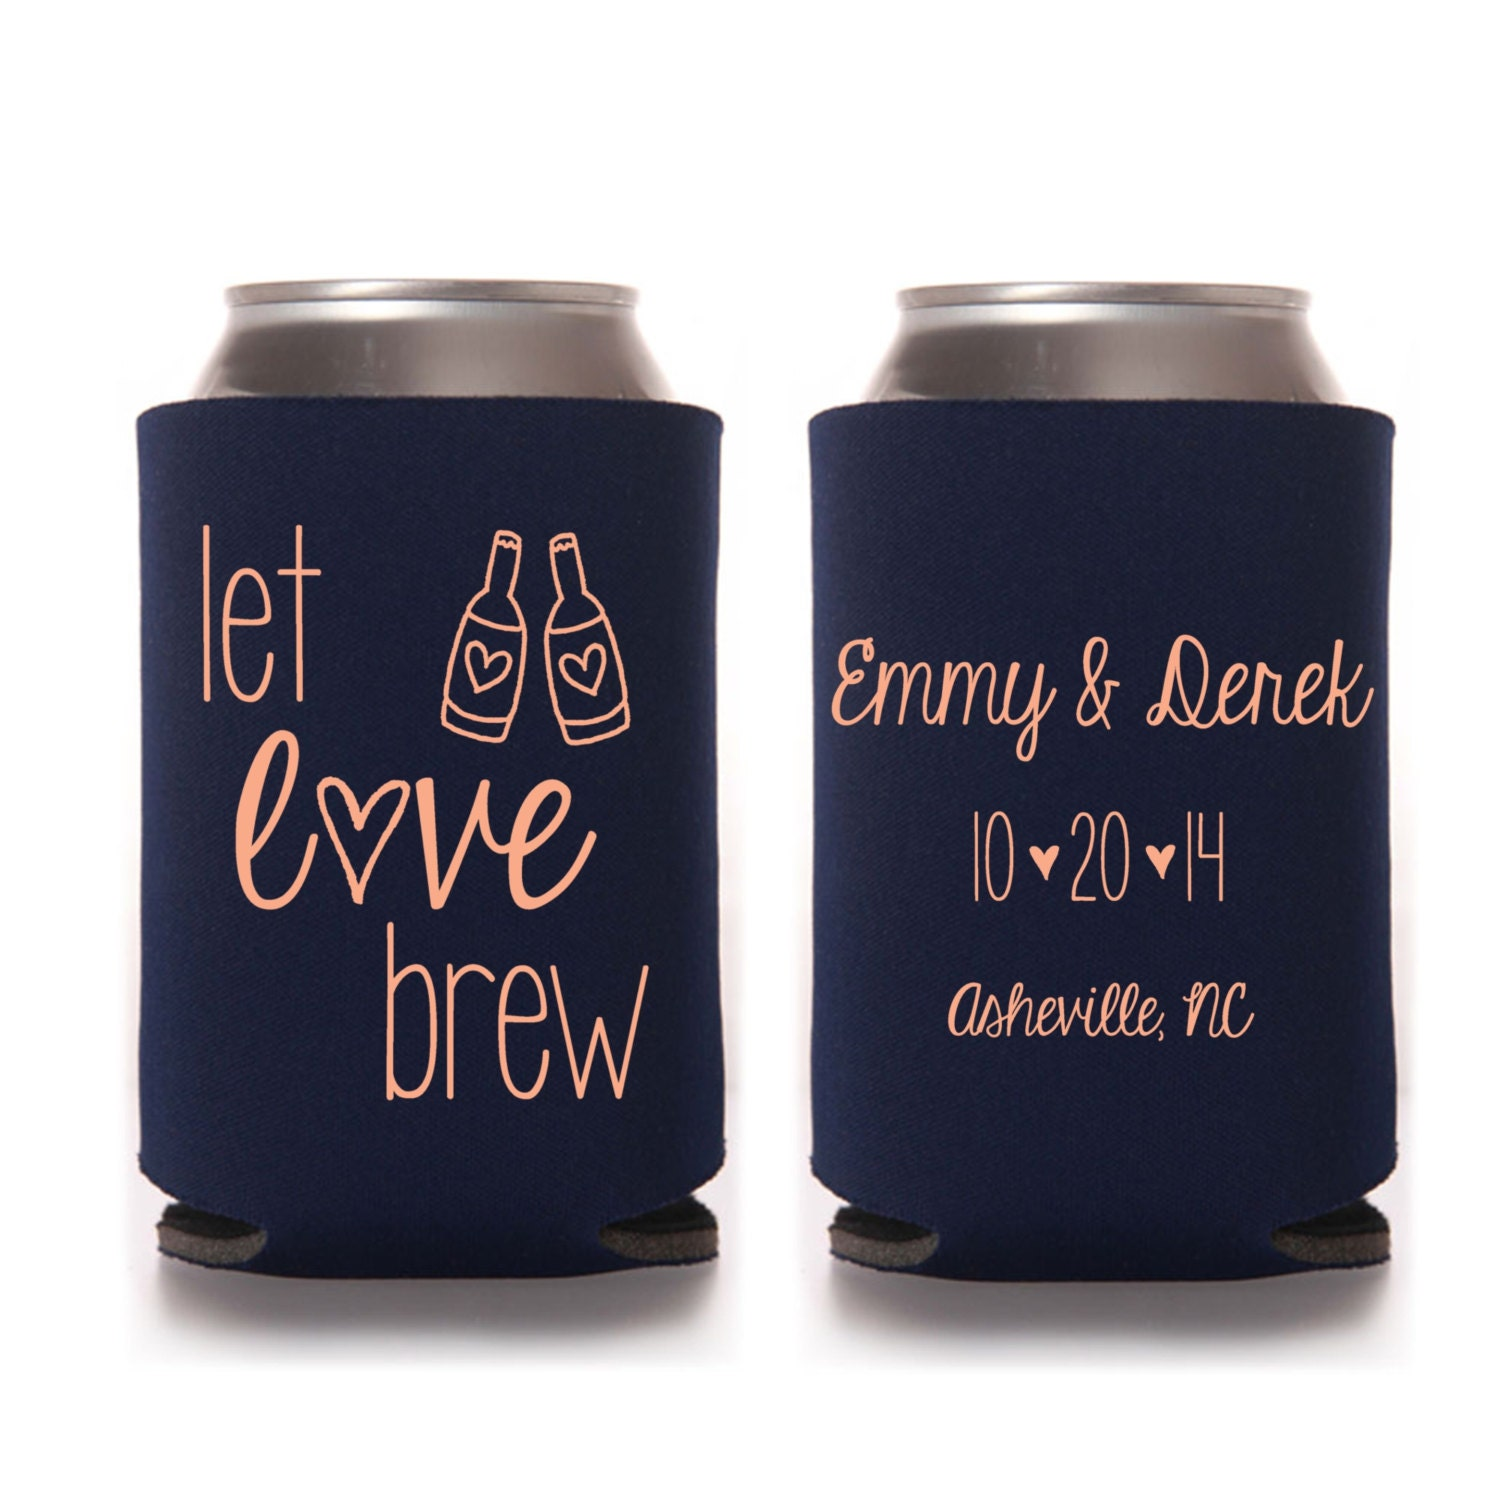 Personalized Beer Koozies Wedding Favors Giftwedding Co